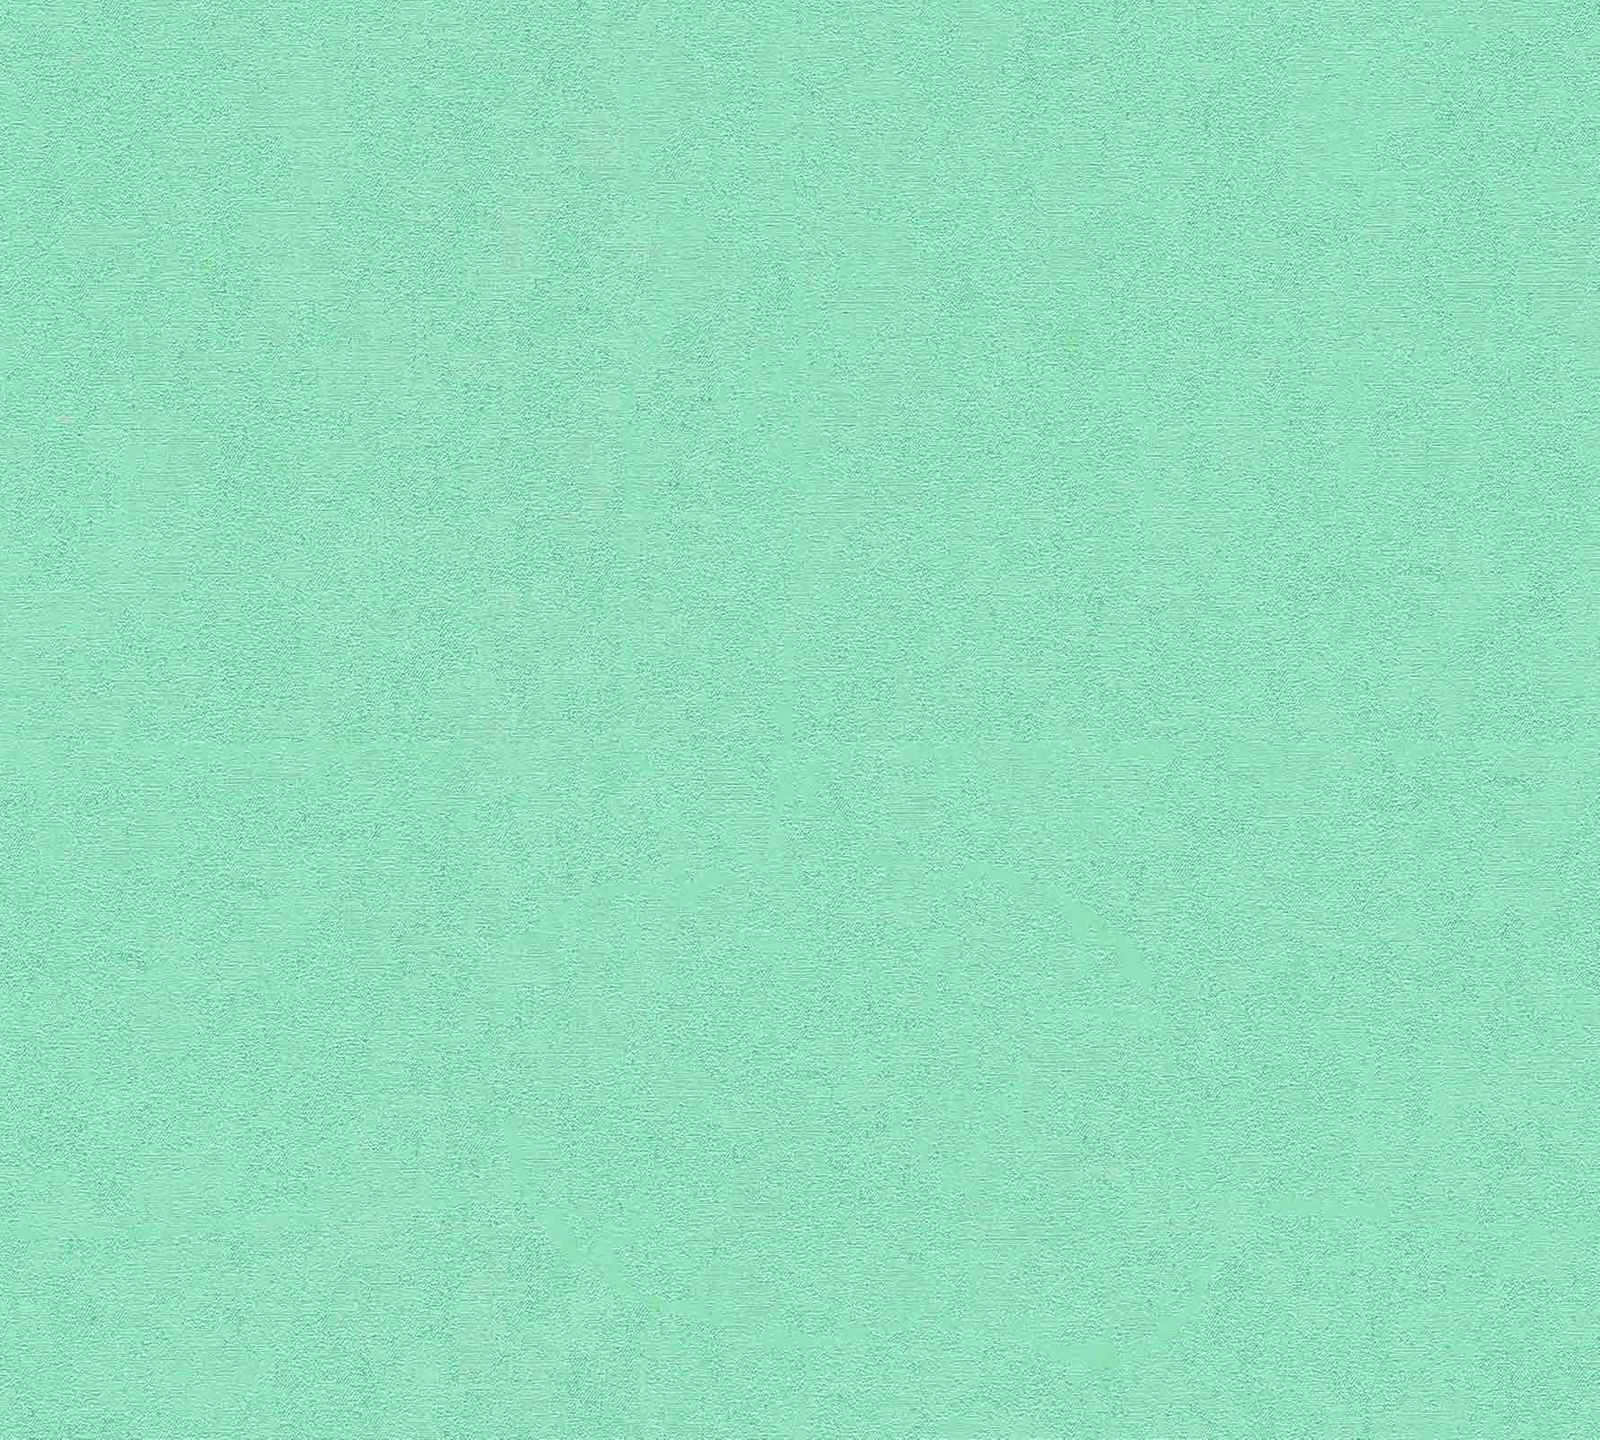 Wallpaper Versace Home Plain Textured mint green Metallic 370501 001